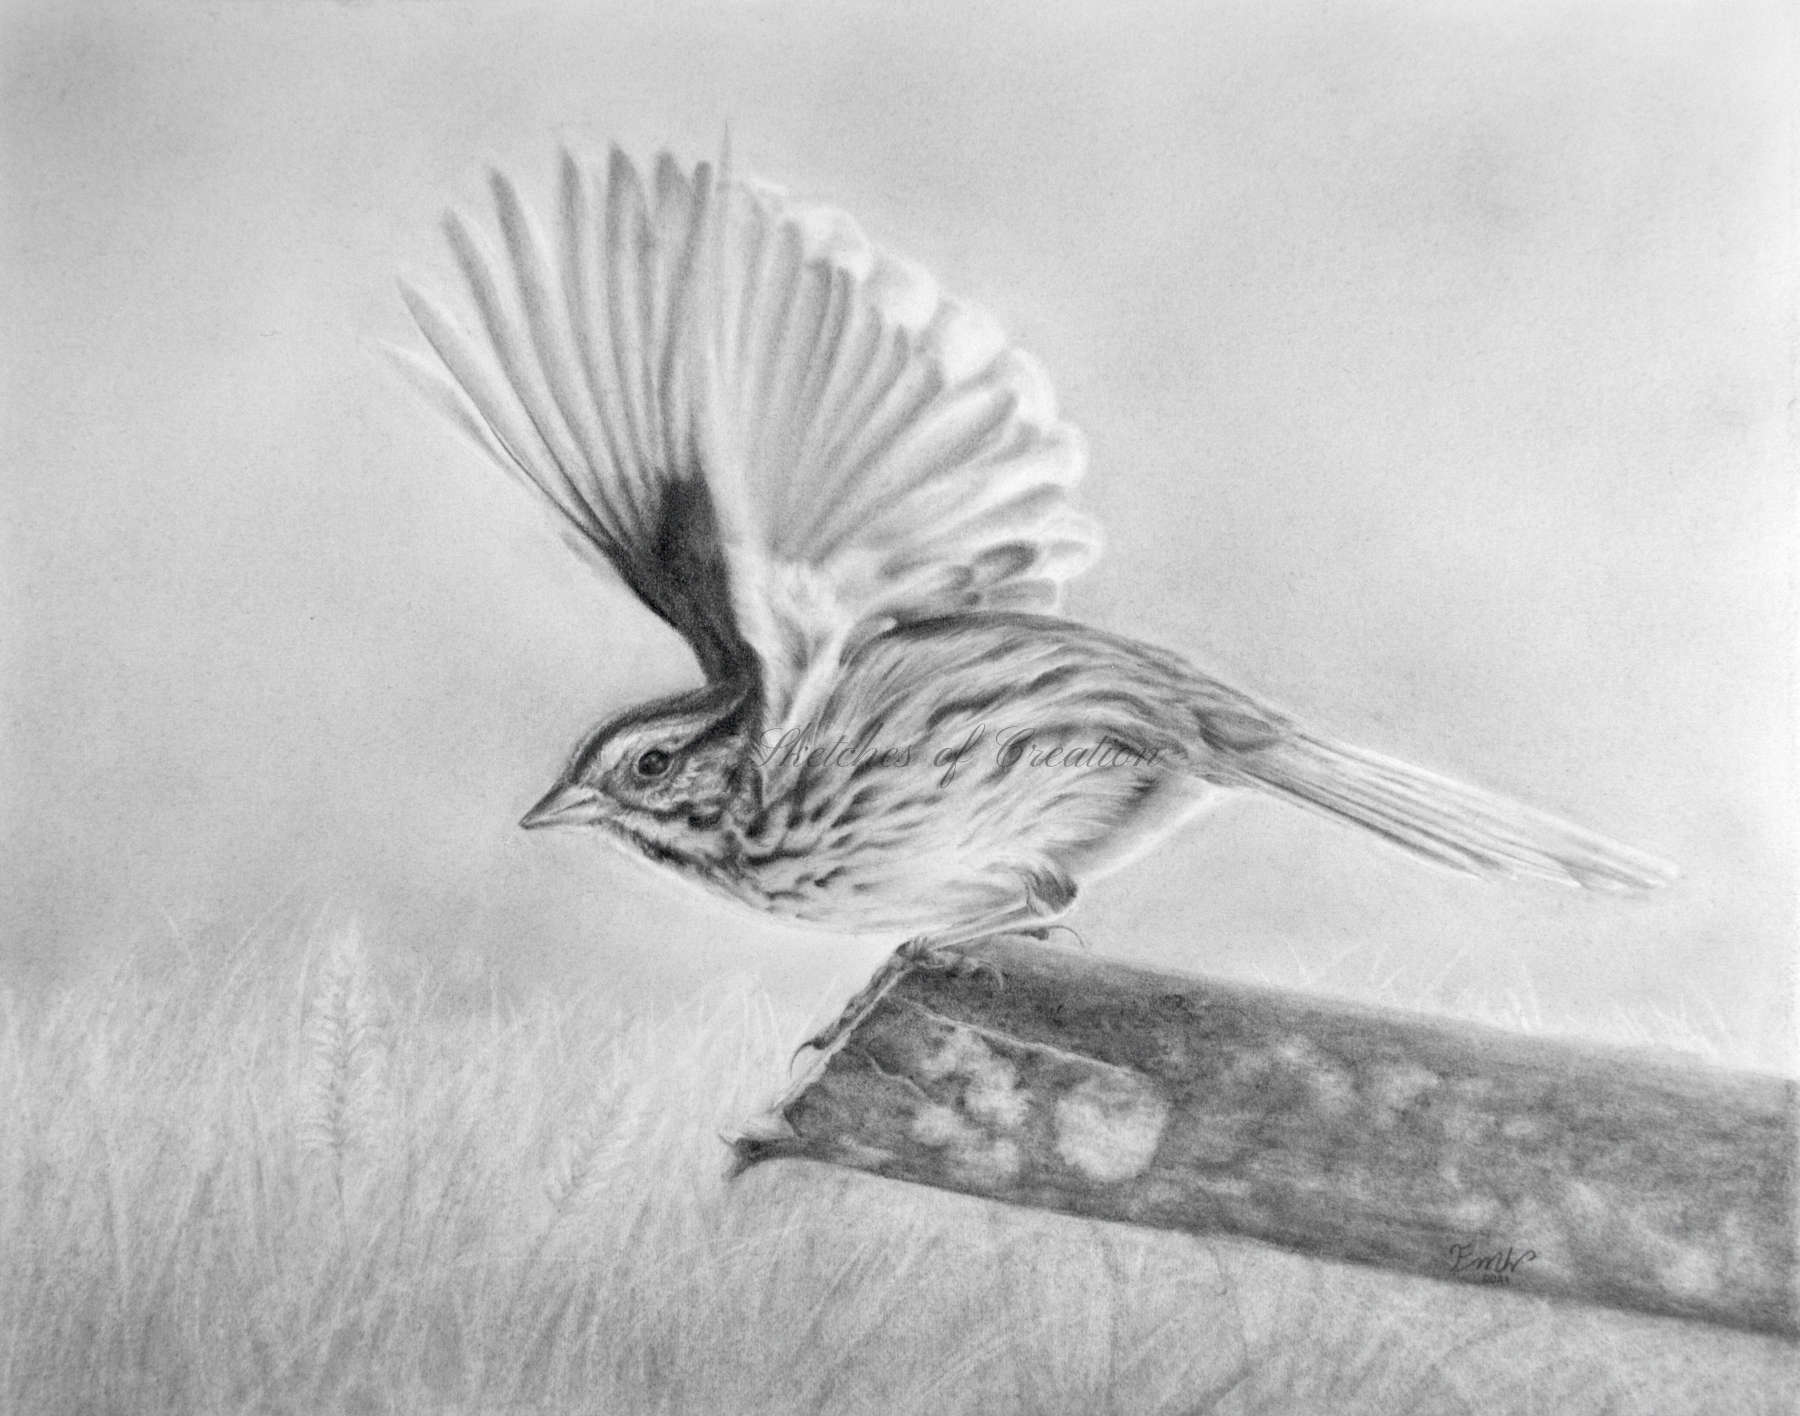 'Takeoff' a drawing of a Song Sparrow. approximately 8x10 inches plus deckled edge. Completed May 2021